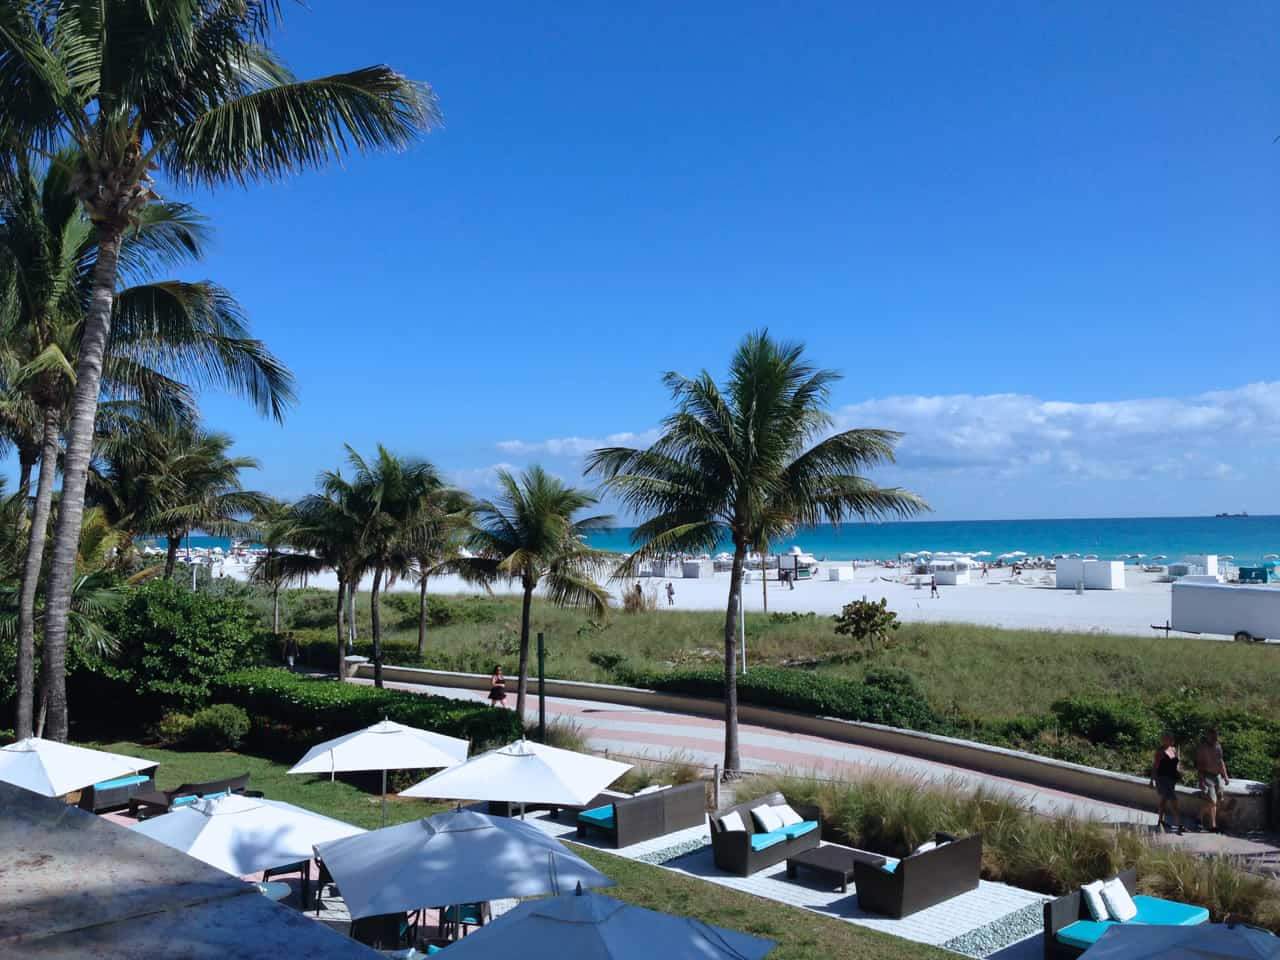 Miami Beach View from the Ritz